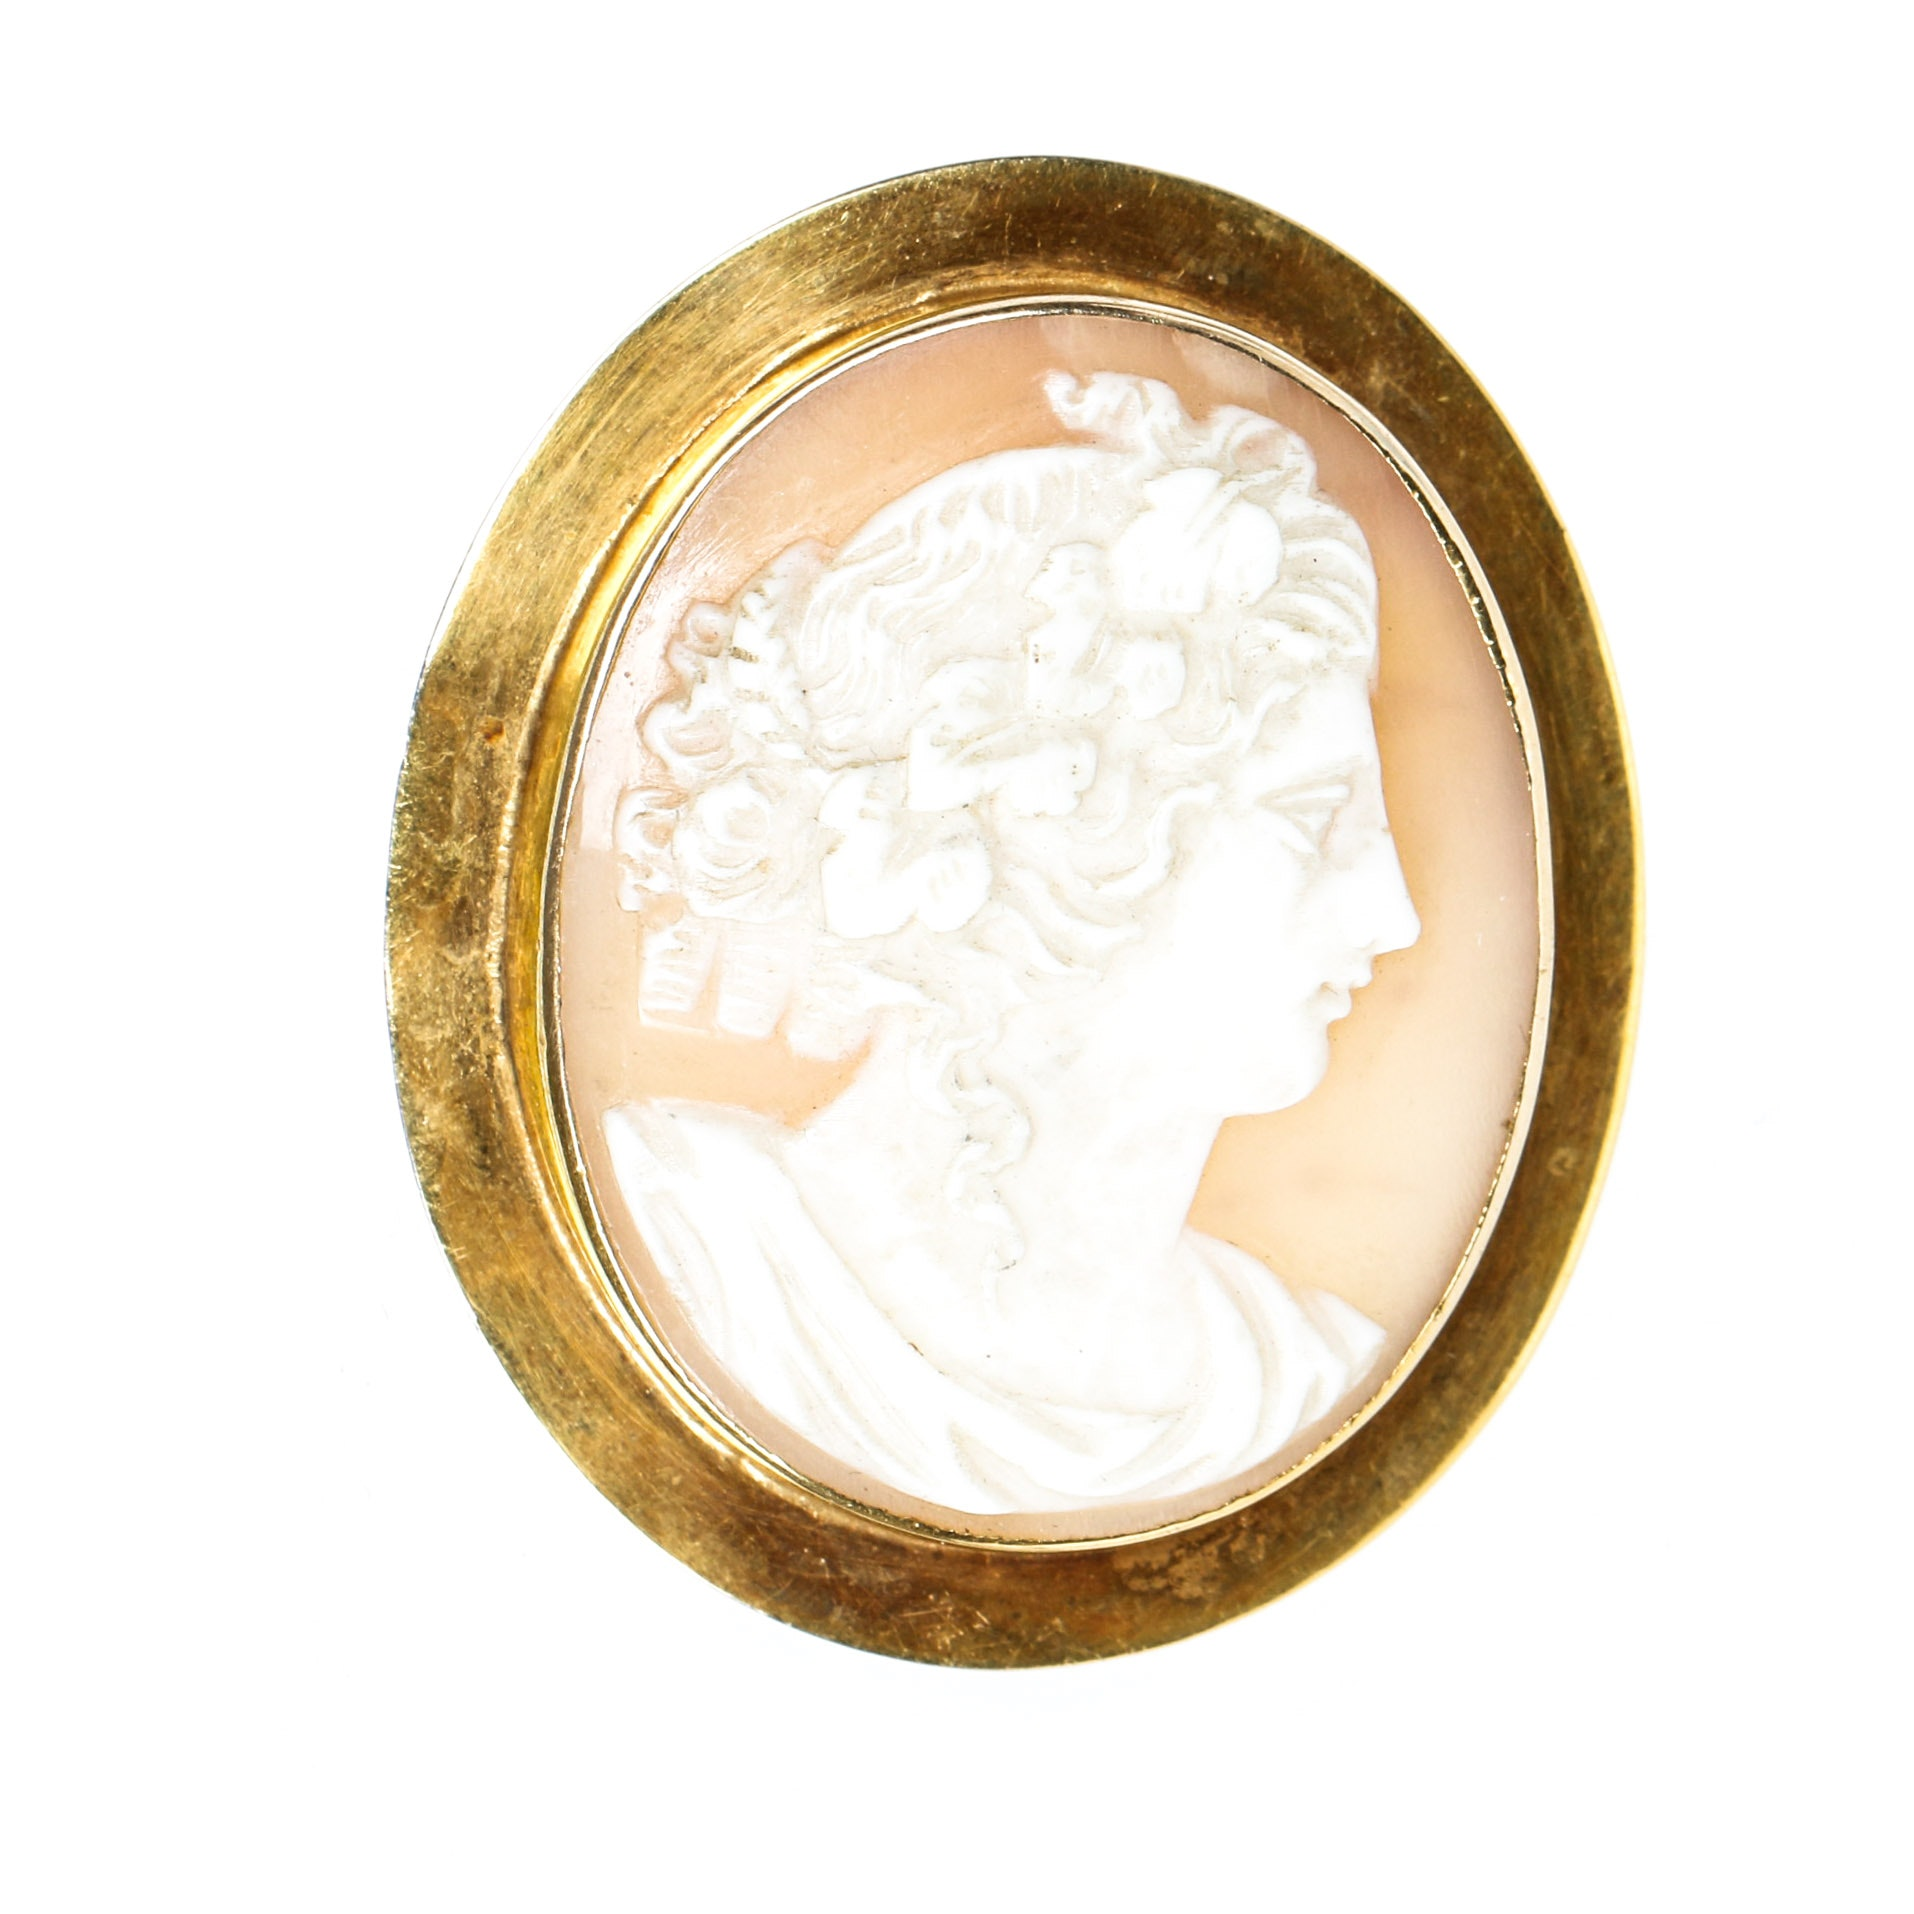 Vintage 14K Gold and Shell Cameo Brooch